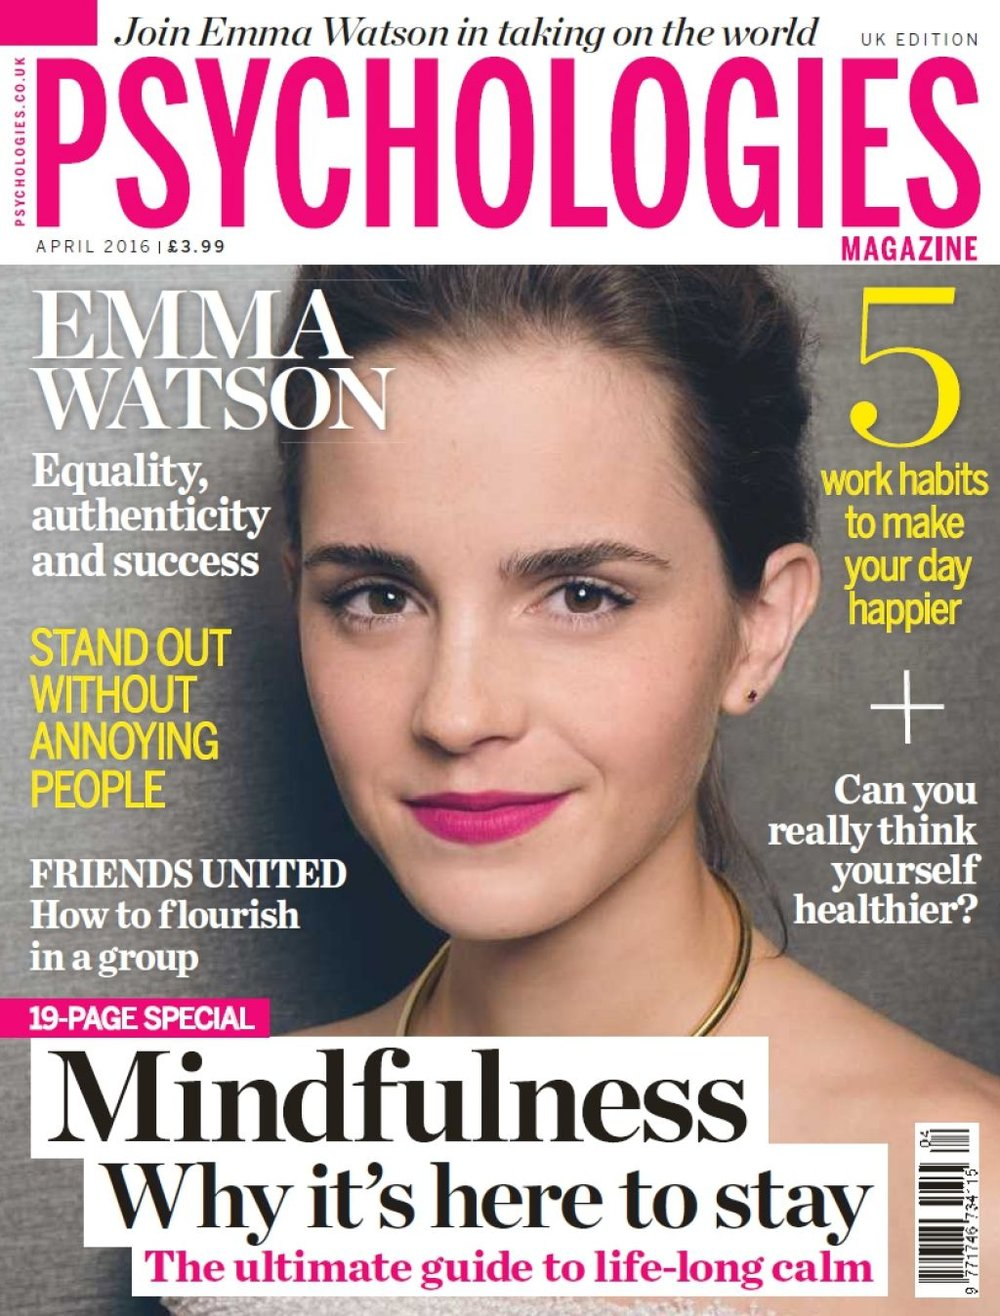 The Desk Detox - Sharron Brennan of Psychologies Magazine interviews Mindfulness expert, Hope Bastine, on the her top 5 Desk Detox tips. Check out her tips here